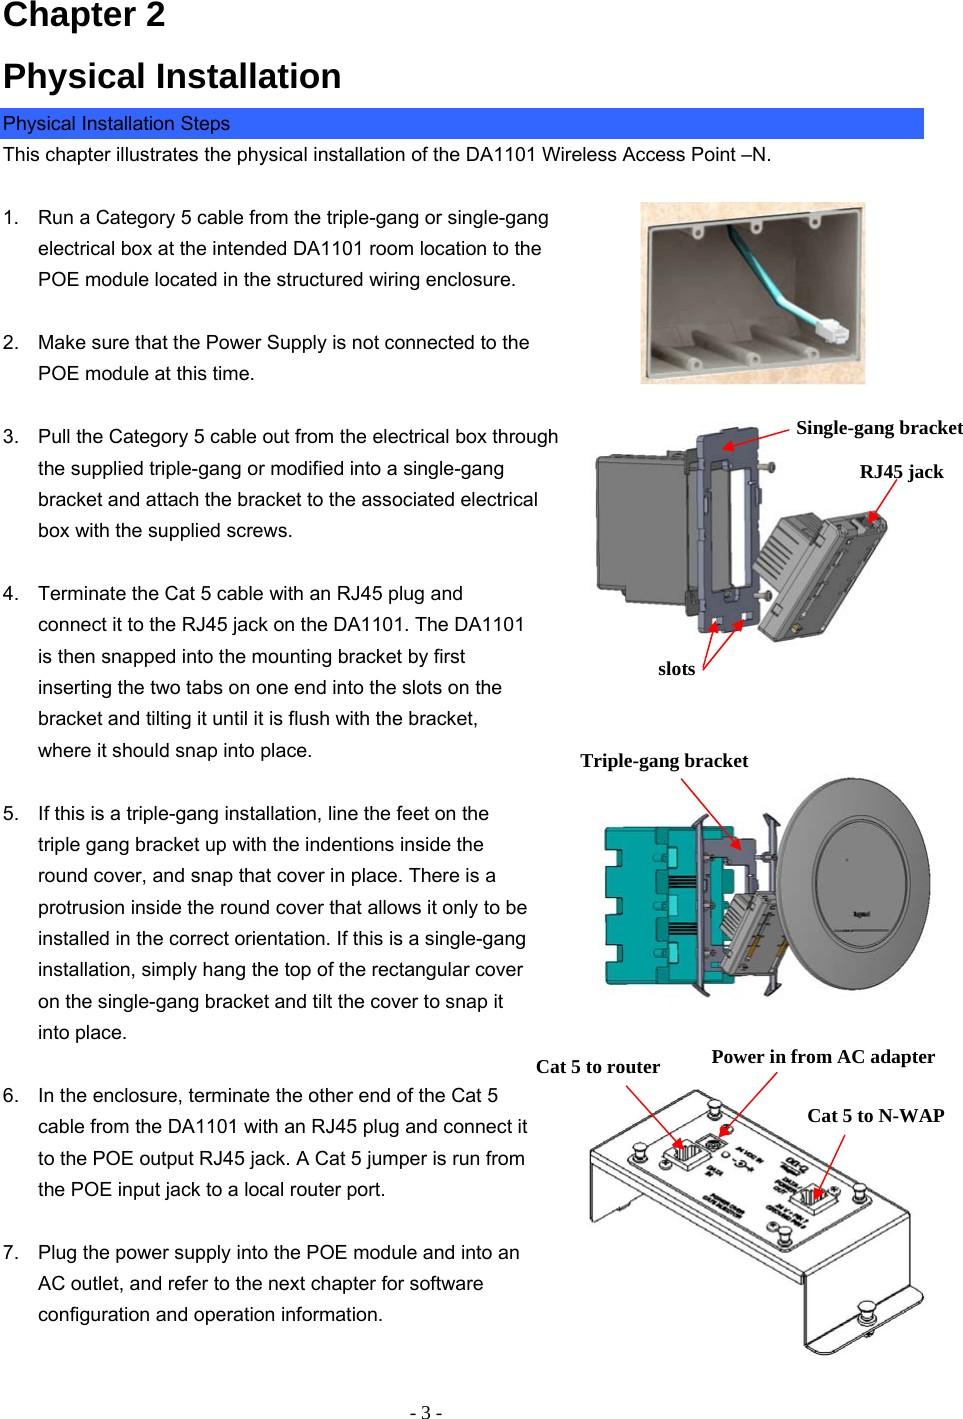 Rj45 Plug Wiring Diagram Page 2 And Schematics Category 5 Dorable Elaboration Electrical